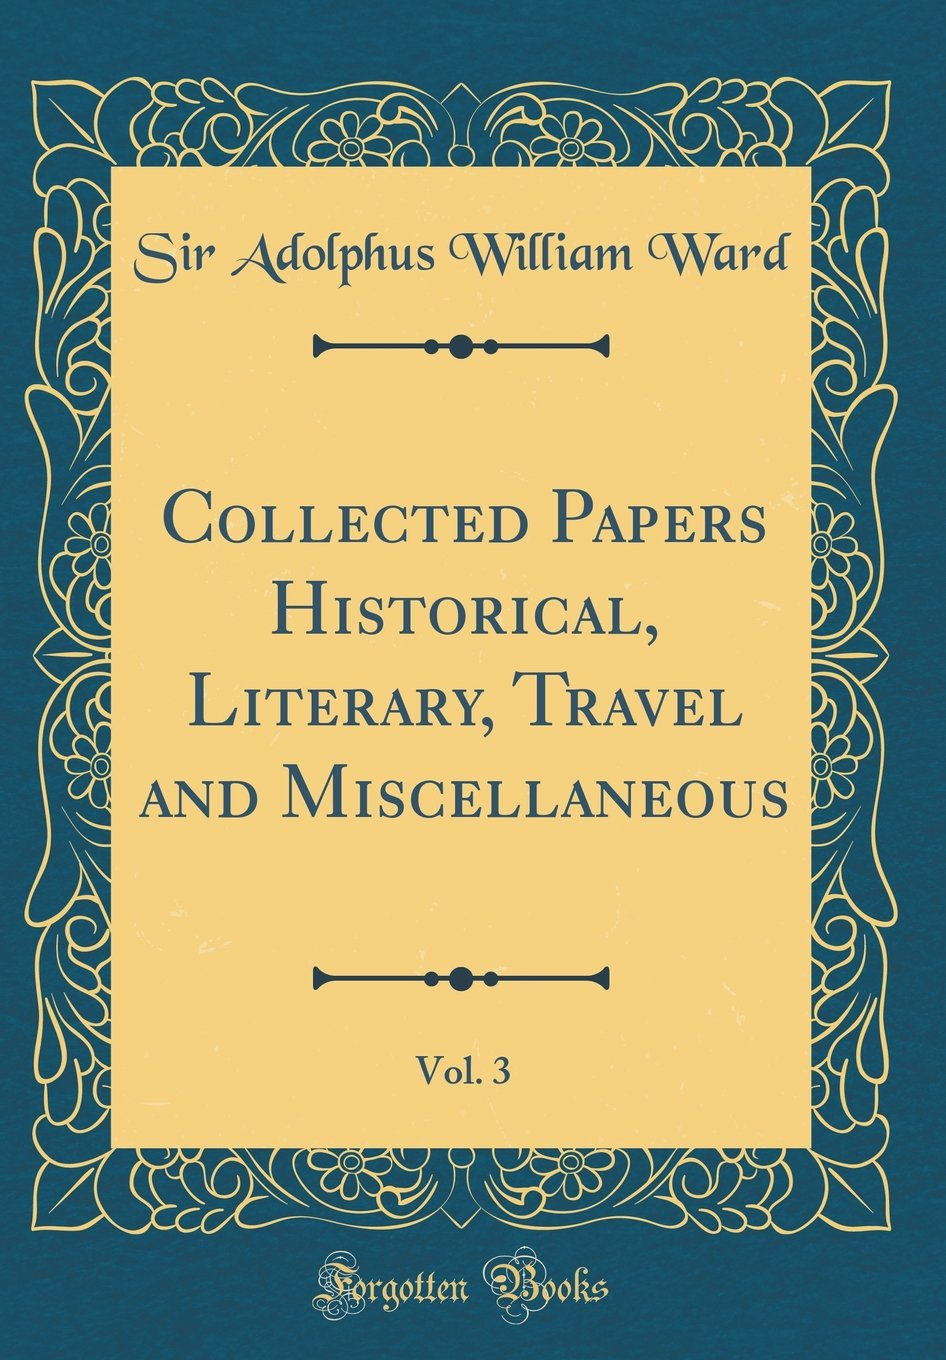 Collected Papers Historical, Literary, Travel and Miscellaneous, Vol. 3 (Classic Reprint) pdf